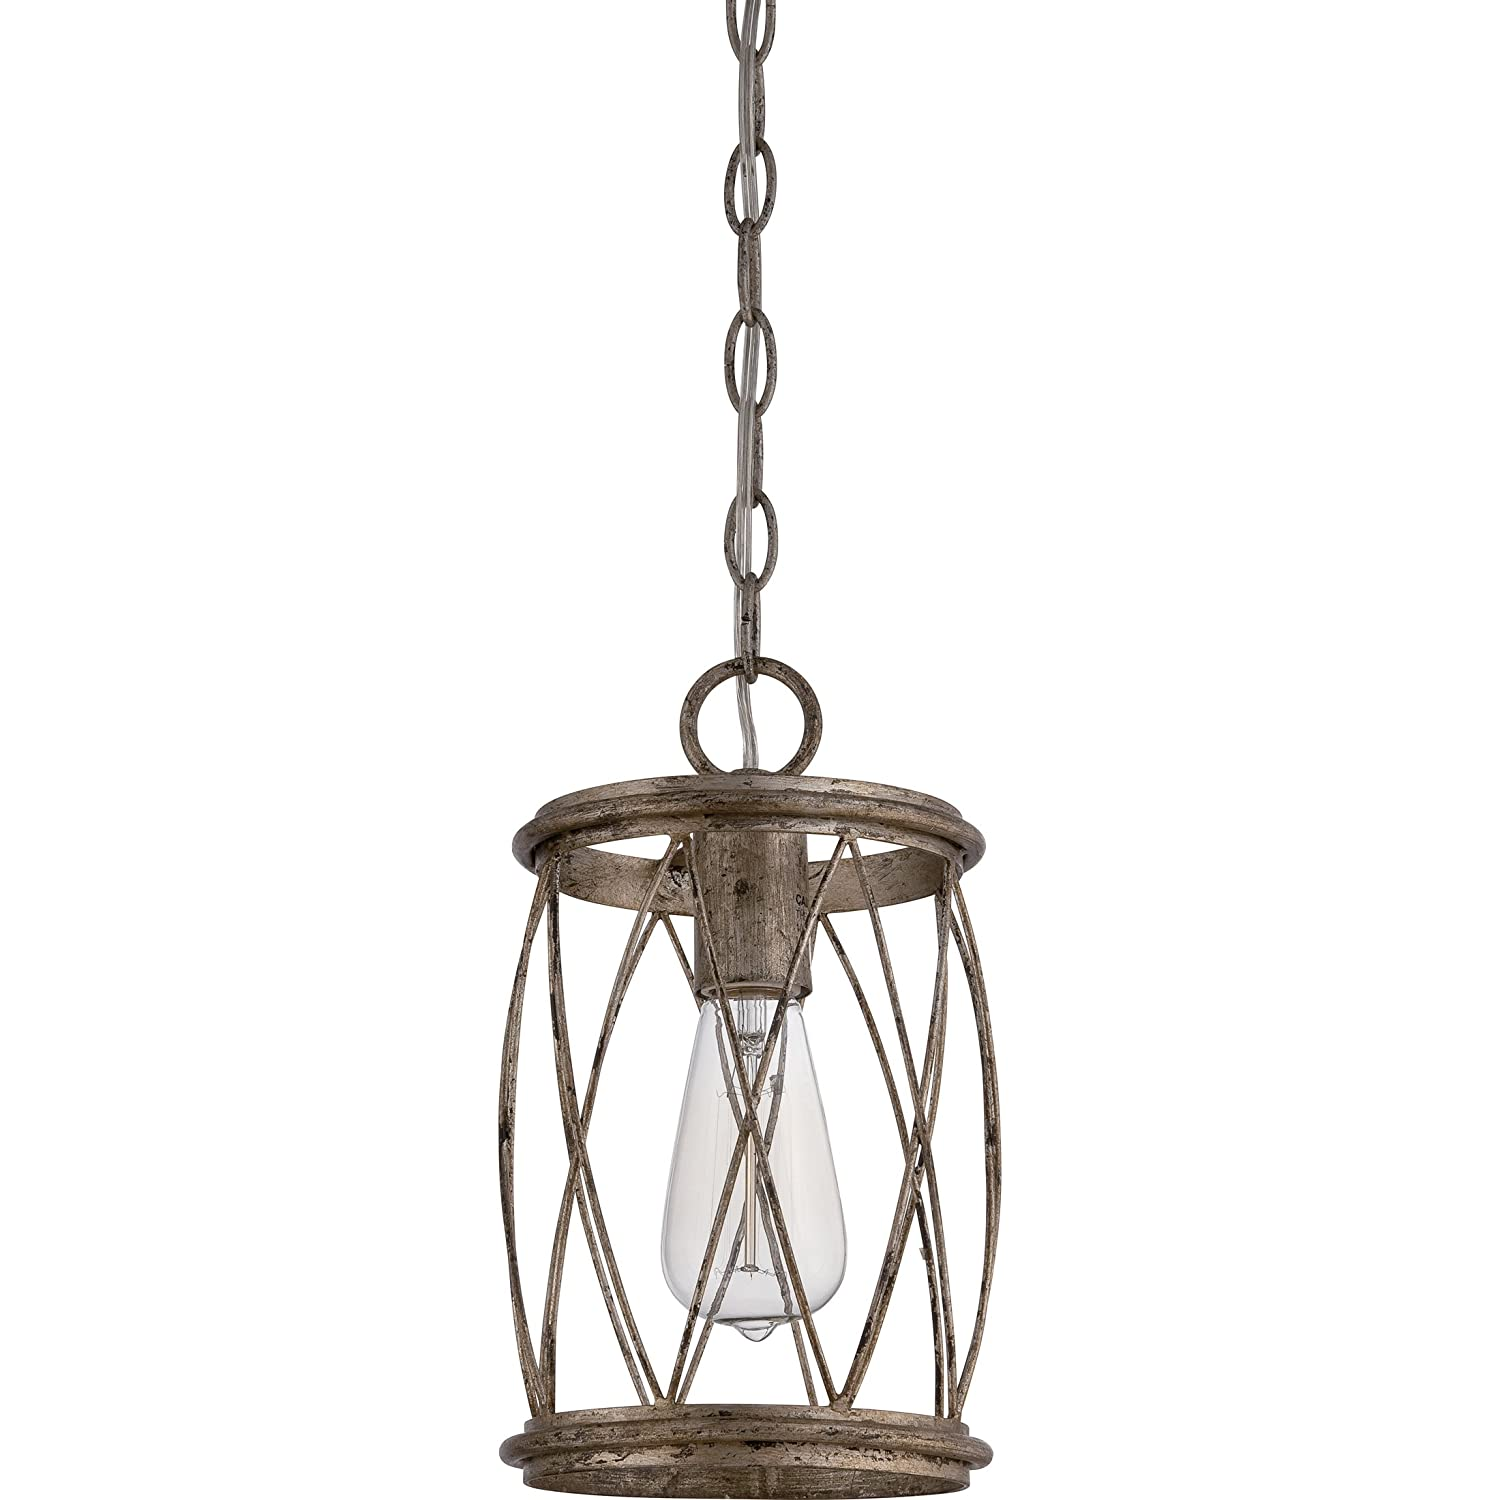 Stone Beam Modern Farmhouse Glass Cylinder Pendant Light Fixture With Light Bulb – 4.75 Inch Shade, 10 – 58 Inch Cord, Oil-Rubbed Bronze